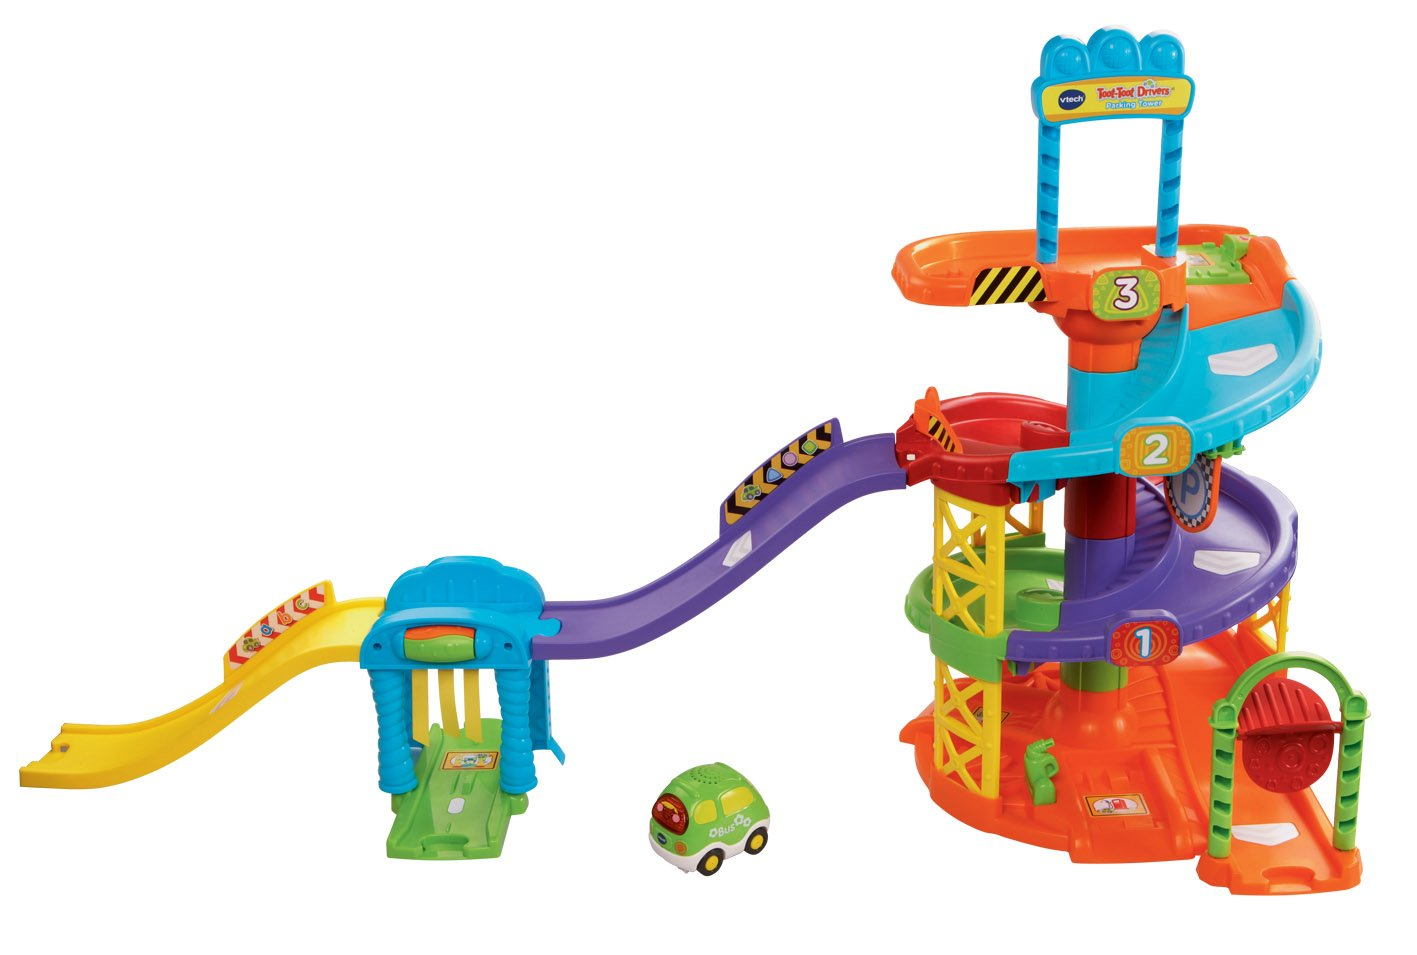 VTech Baby Toot-Toot Drivers Parking Tower - Multi-Coloured Vtech Electronics 152703